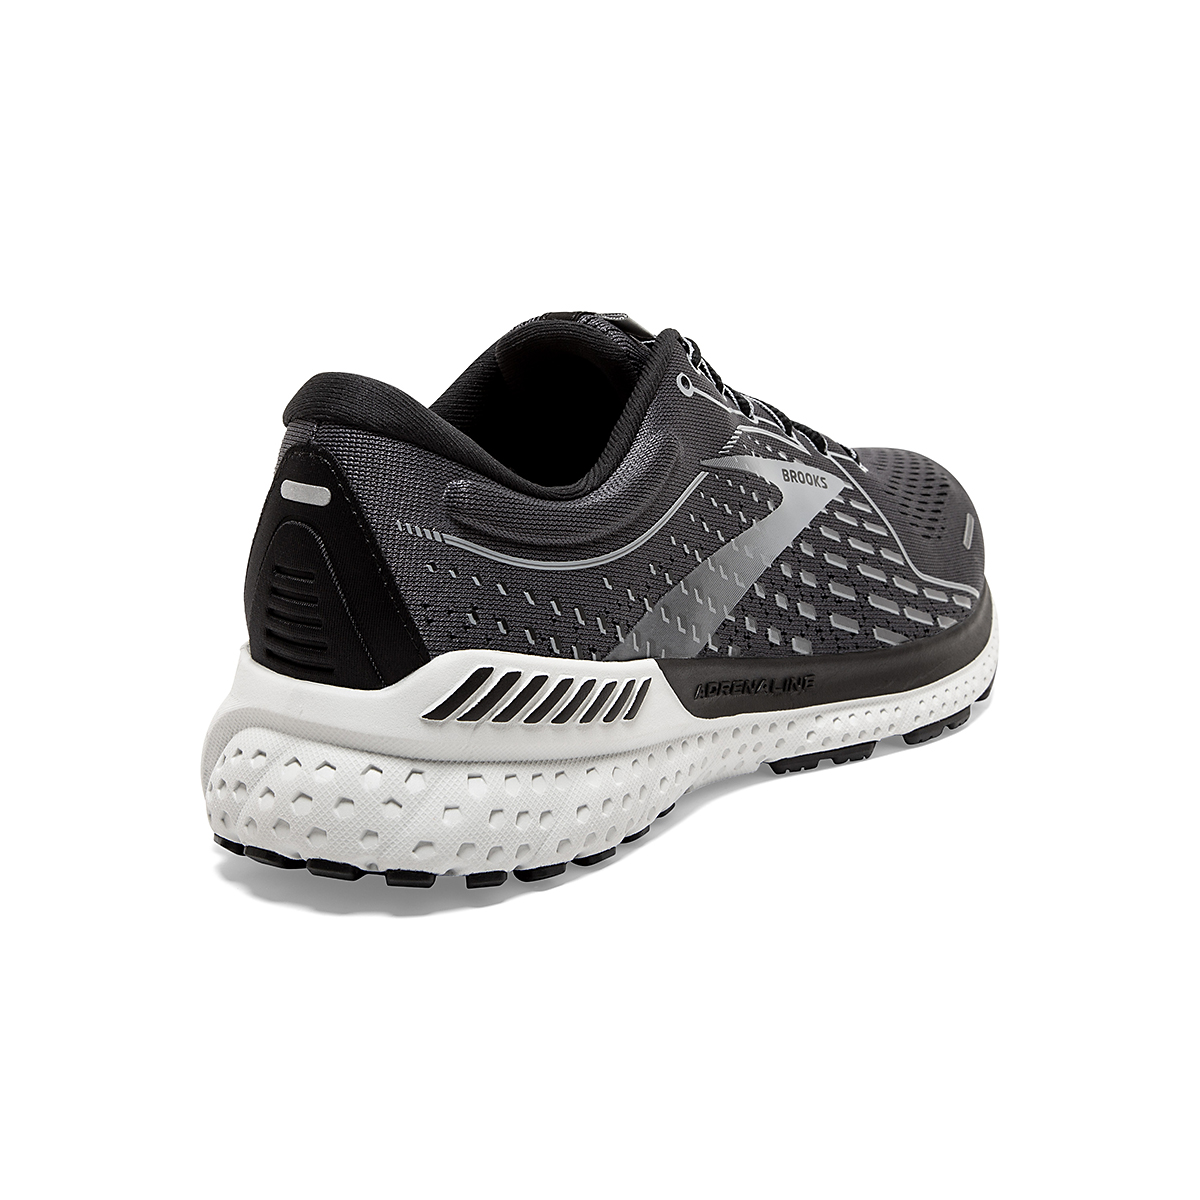 Men's Brooks Adrenaline GTS 21 Running Shoe - Color: Blackened Pearl - Size: 7 - Width: Regular, Blackened Pearl, large, image 4